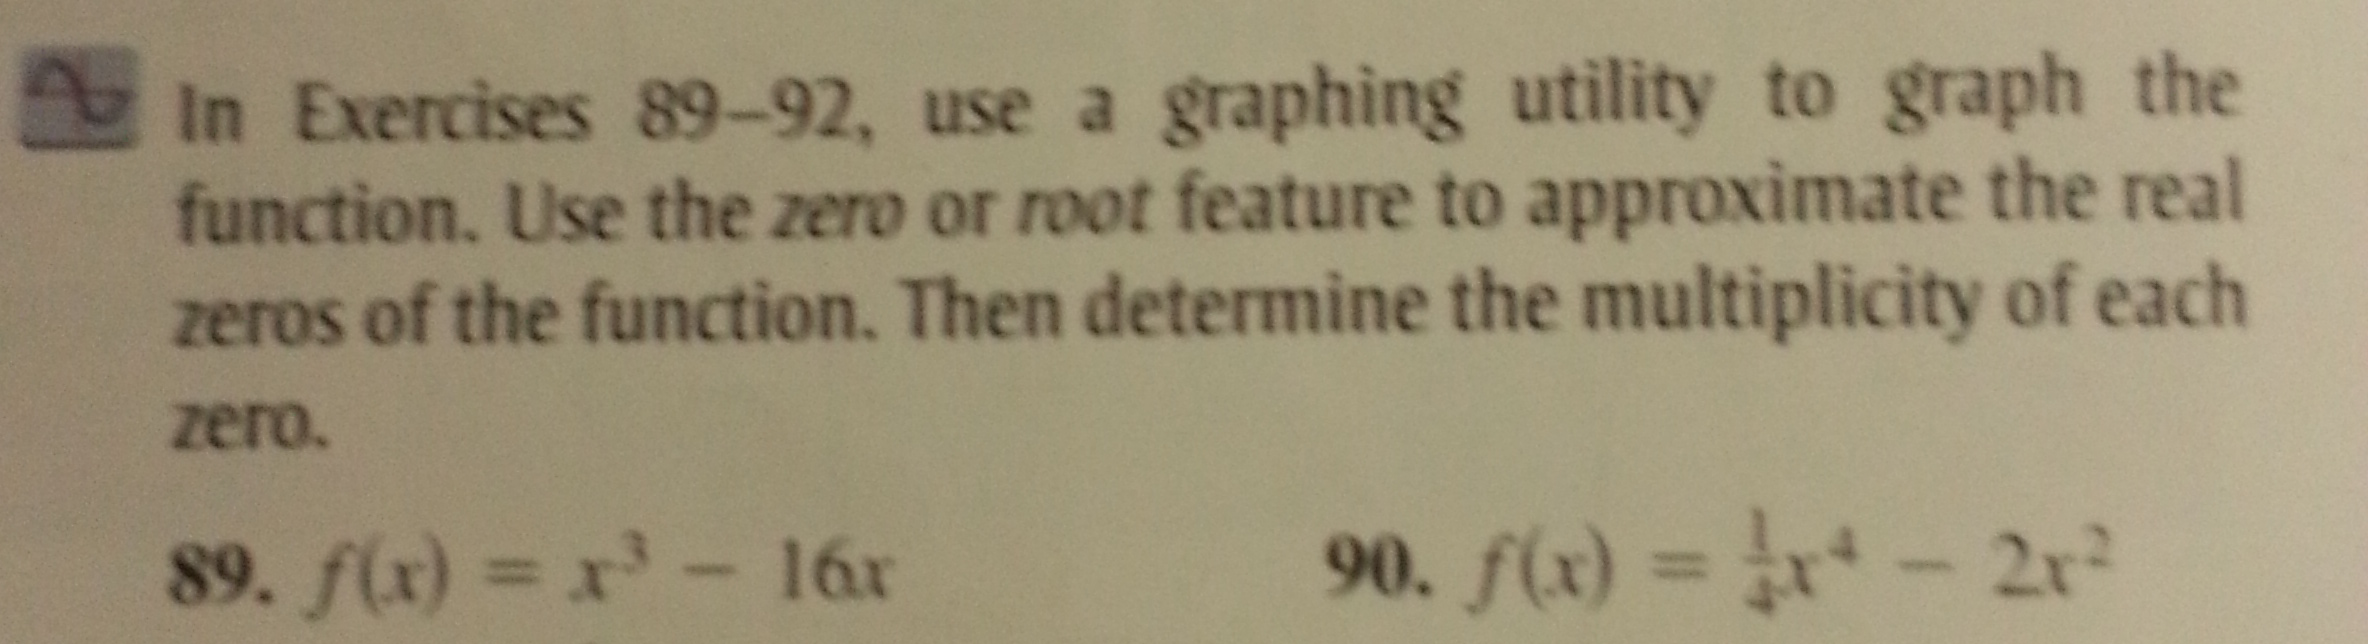 In Exercises 89-92, use a graphing utility to grap